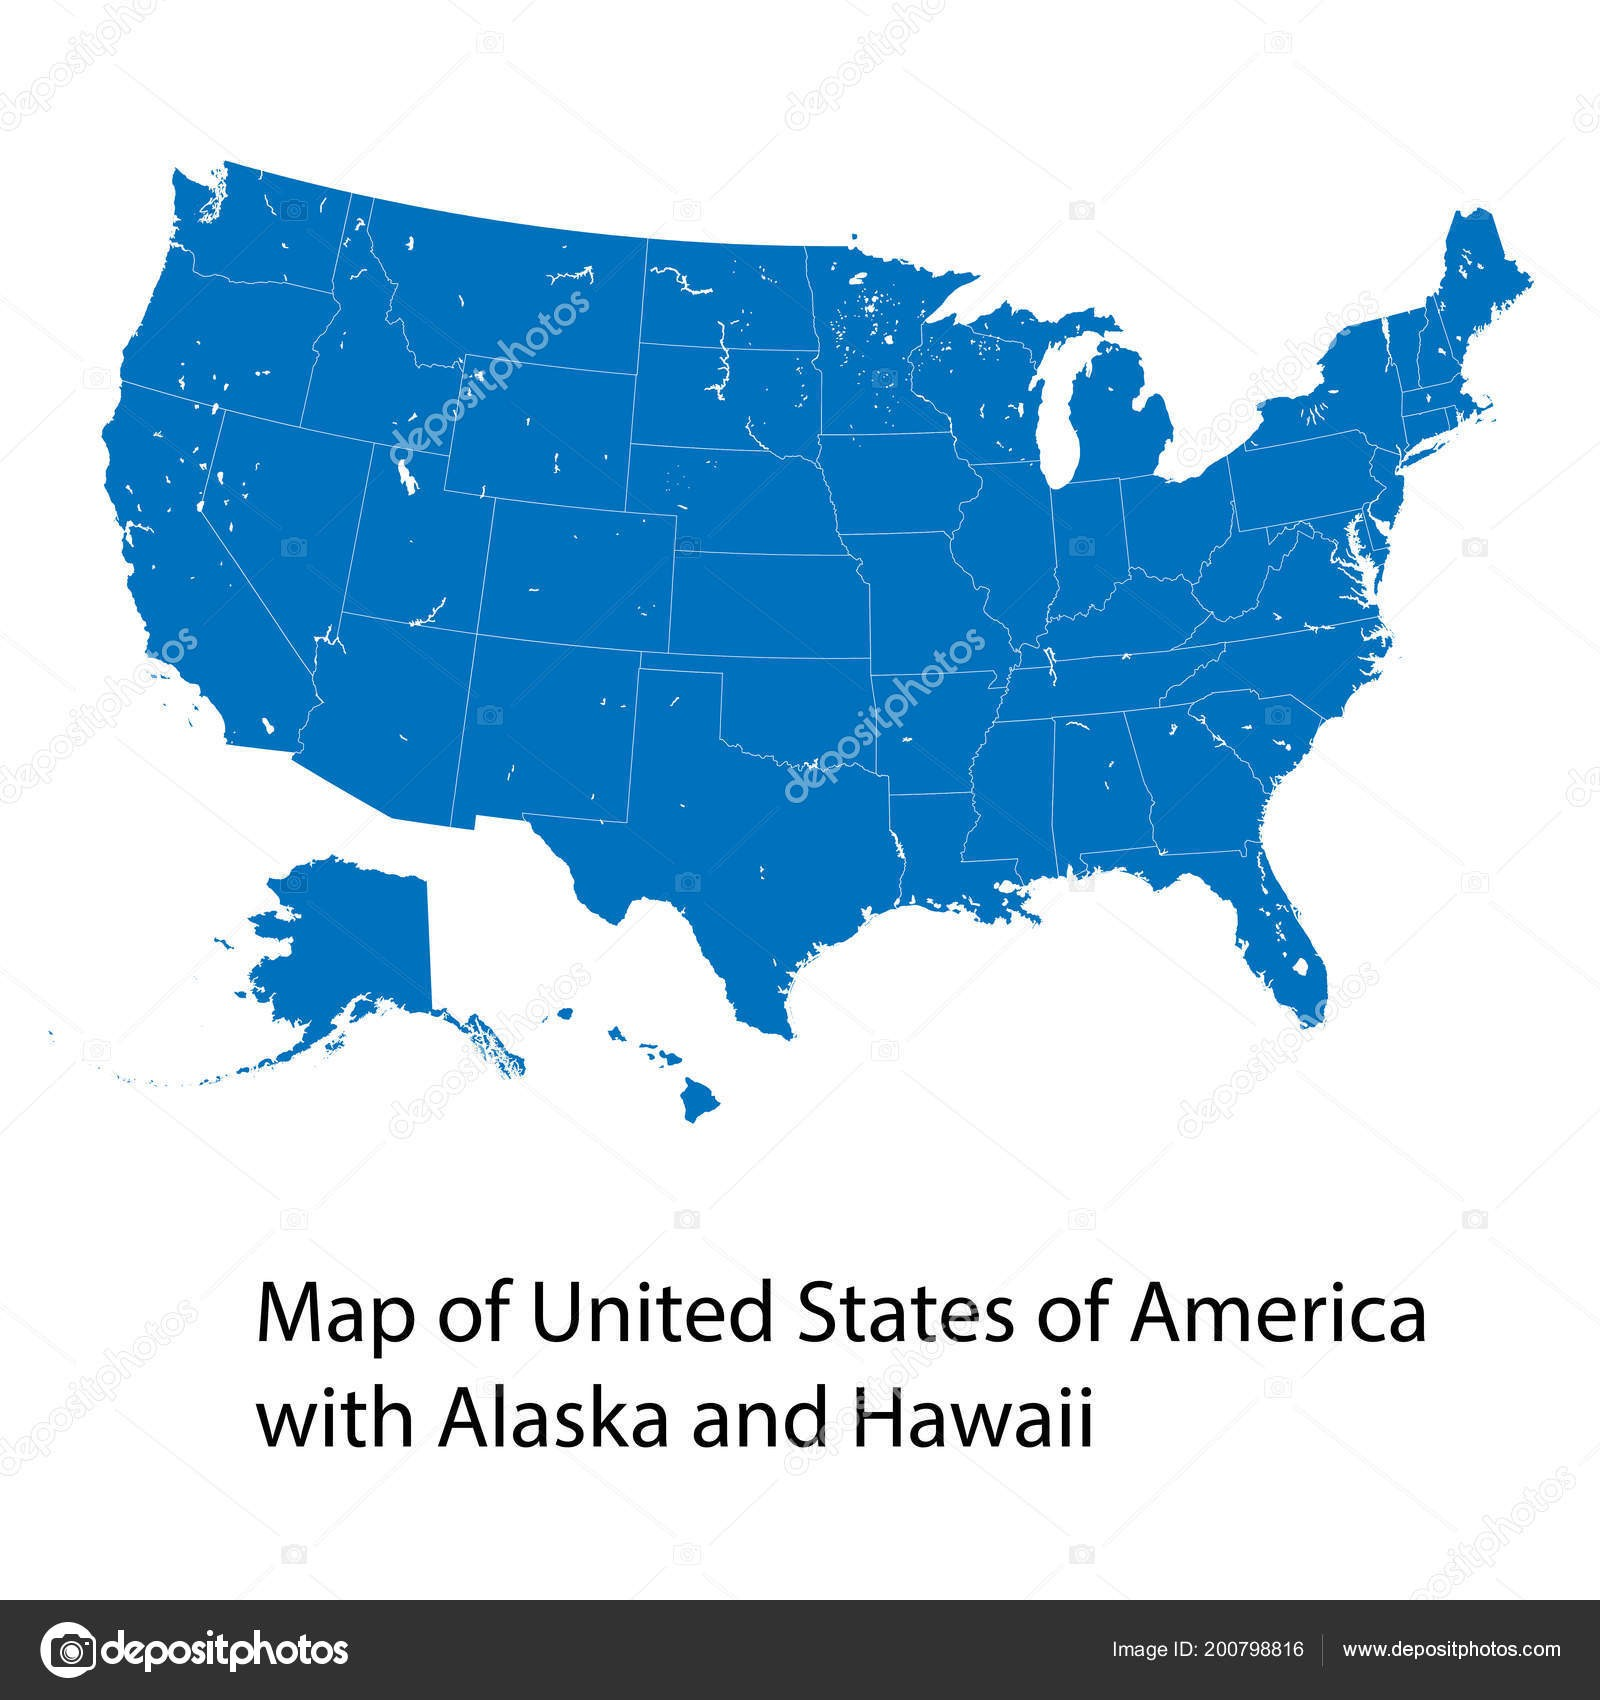 Hawaii Map Vector at GetDrawings.com | Free for personal use Hawaii ...